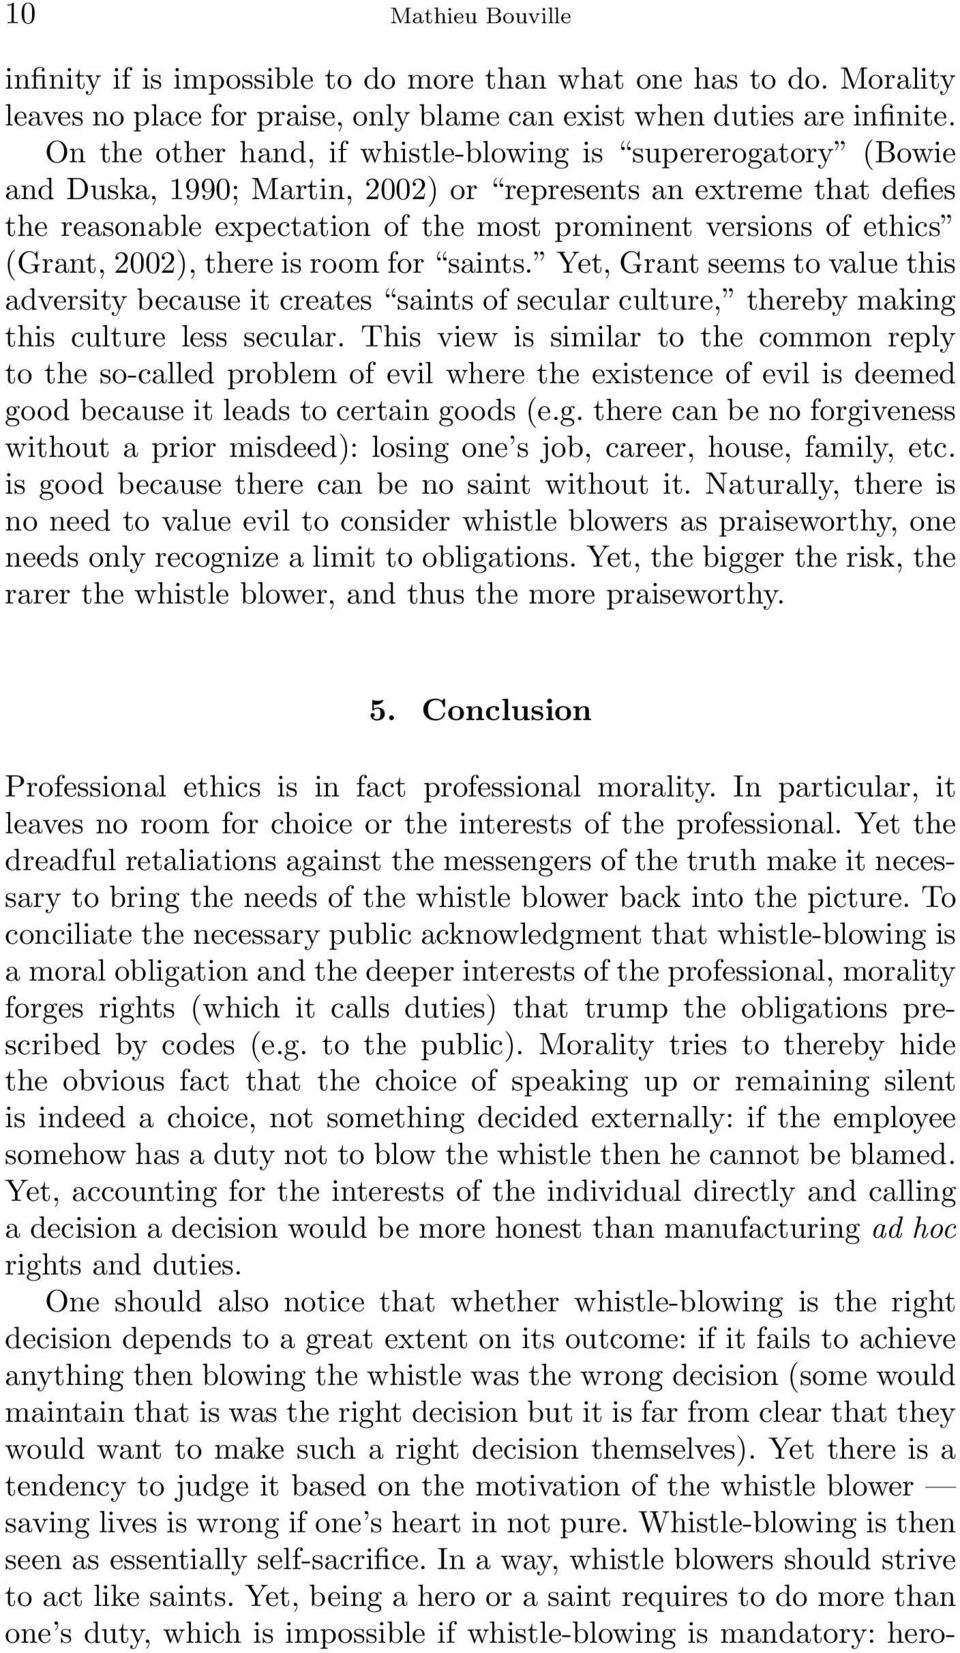 """morality and whistle blowing Whistle-blowing and morality 3 21 a dreadful obligation alford (2007) notes that """"theirs is an act of considerable consequence, especially when one considers that."""